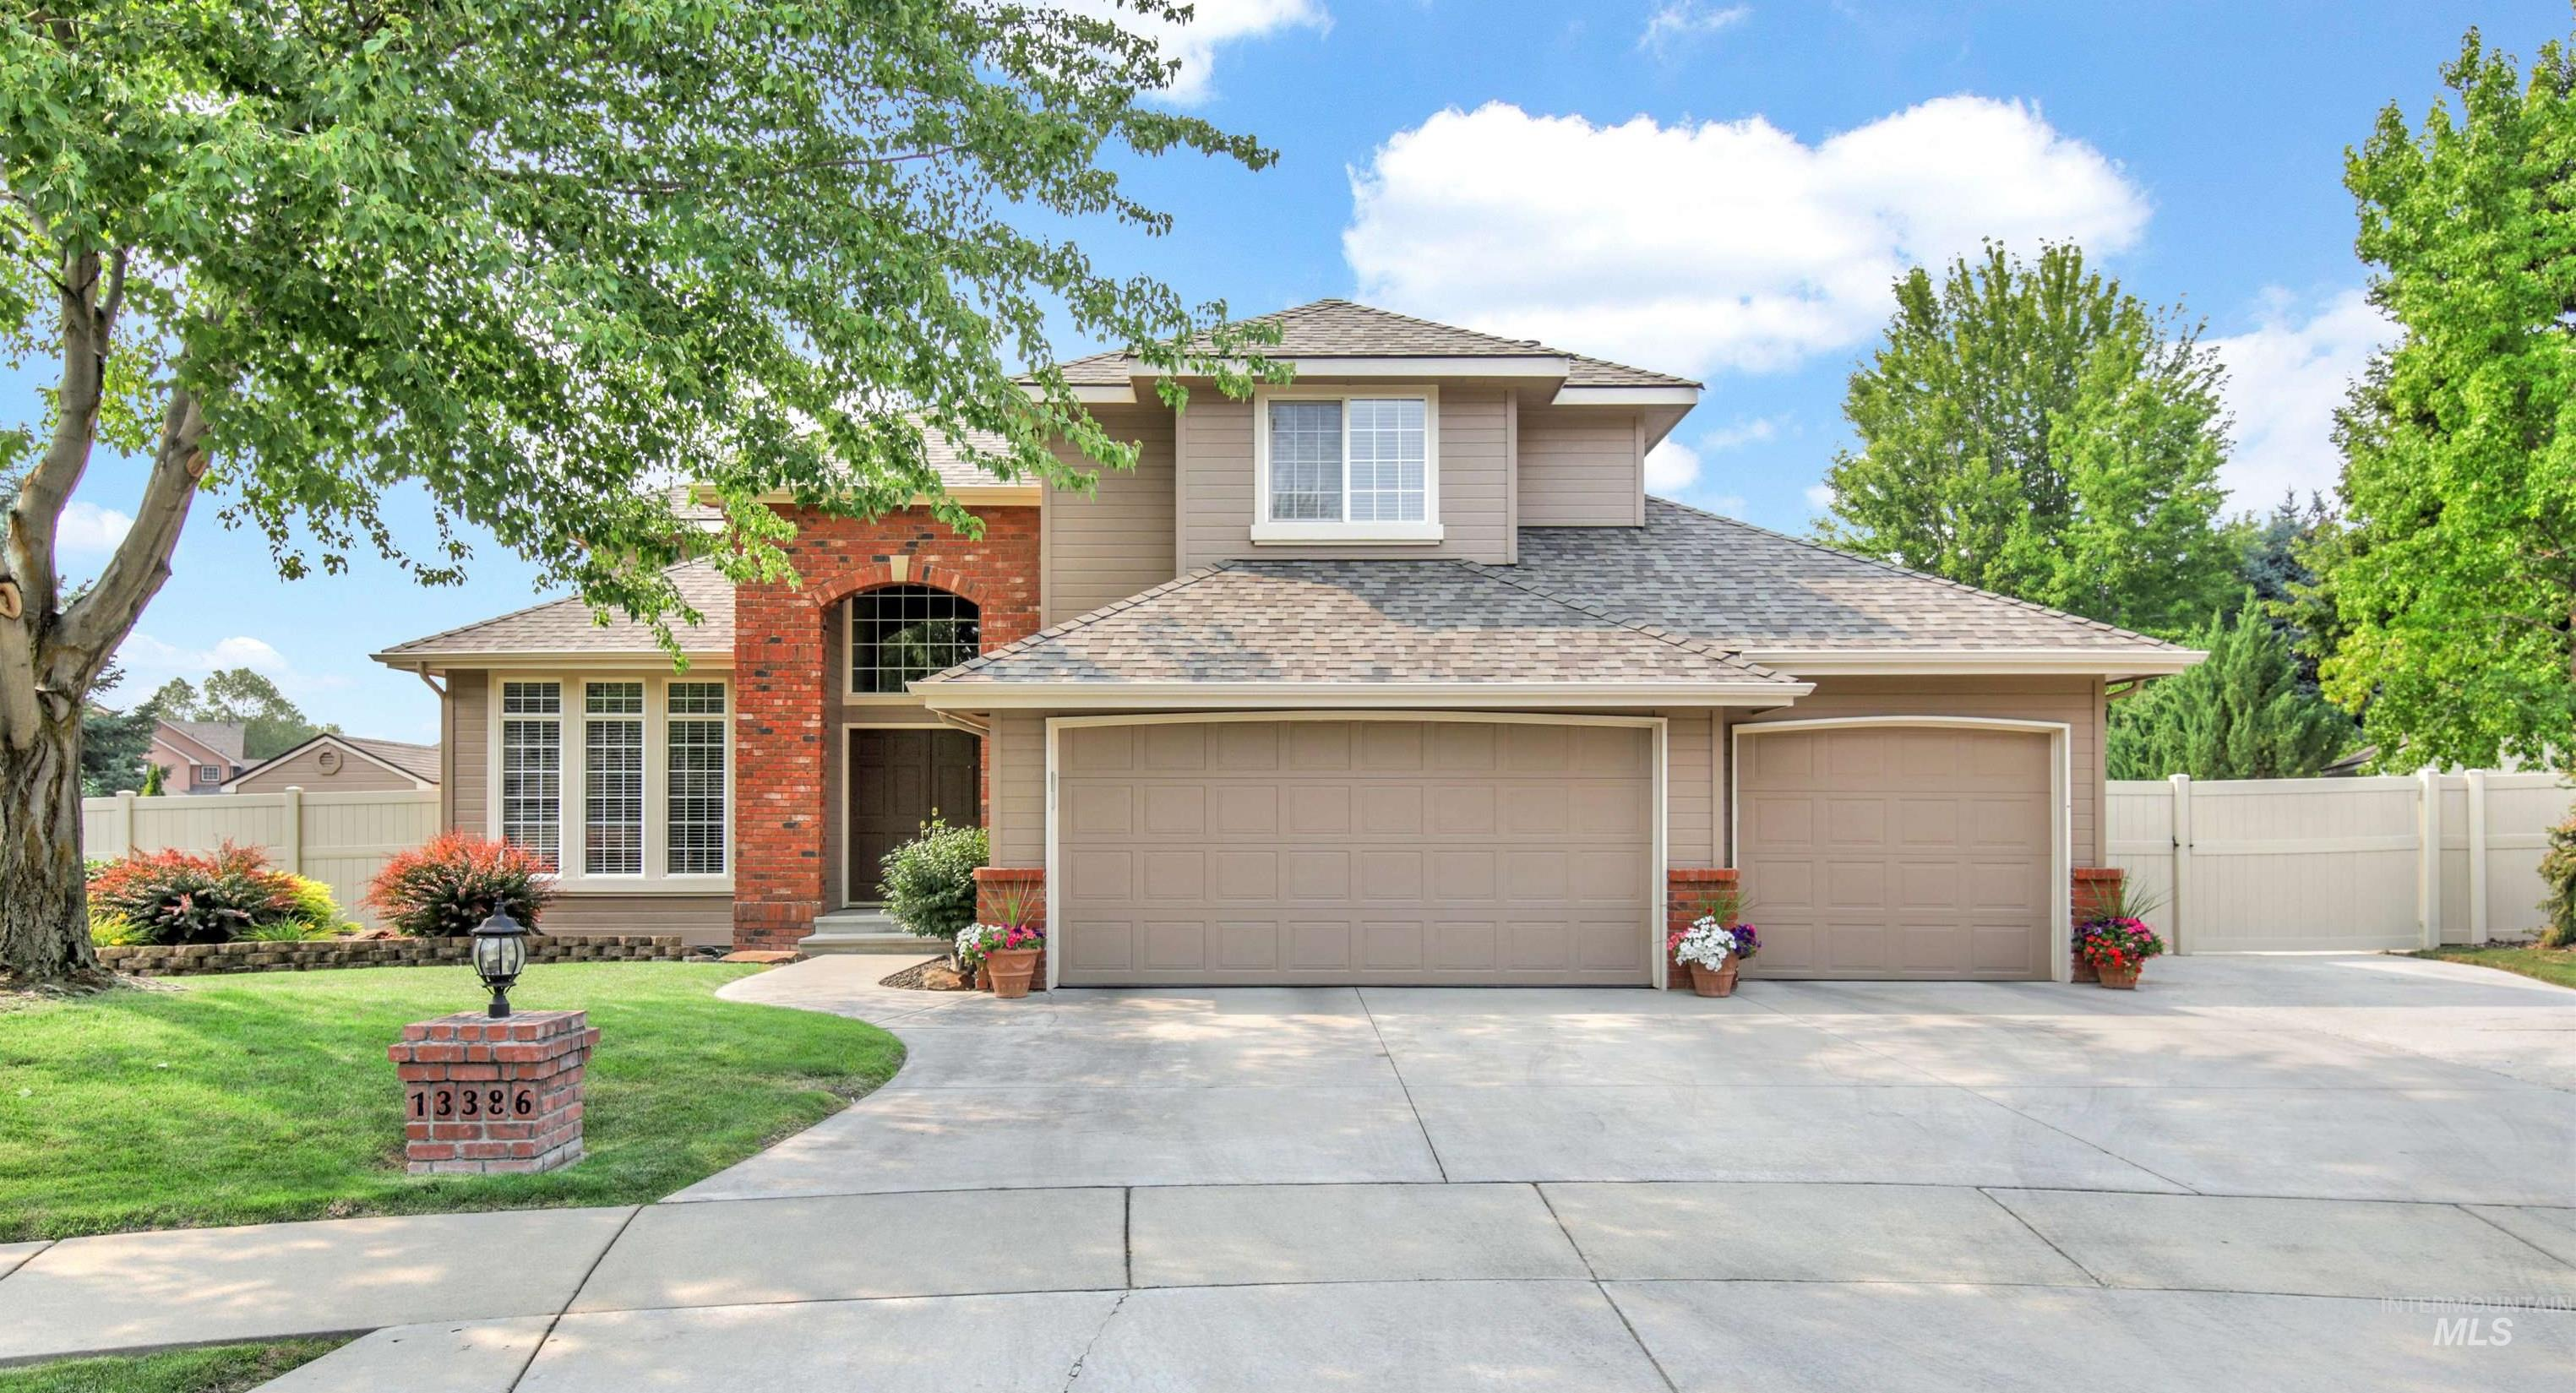 Meticulously maintained home and backyard oasis.  5 bedrooms and 4 full baths- nearly 4000 feet. Extra Large lot beautifully landscaped with a private saltwater pool, automatic cover and diving board.  Covered patio large enough for 2 seating areas.  Updated kitchen attached to family room.  4 large bedrooms upstairs and an additional bedroom or office flex room with full bath on main level.  Fully finished large basement with bathroom. Cul-de-sac and full vinyl fencing. Walking distance to park and YMCA. - Vikki M Kaylor, Voice: 208-860-2866, Silvercreek Realty Group, Main: 208-377-0422,